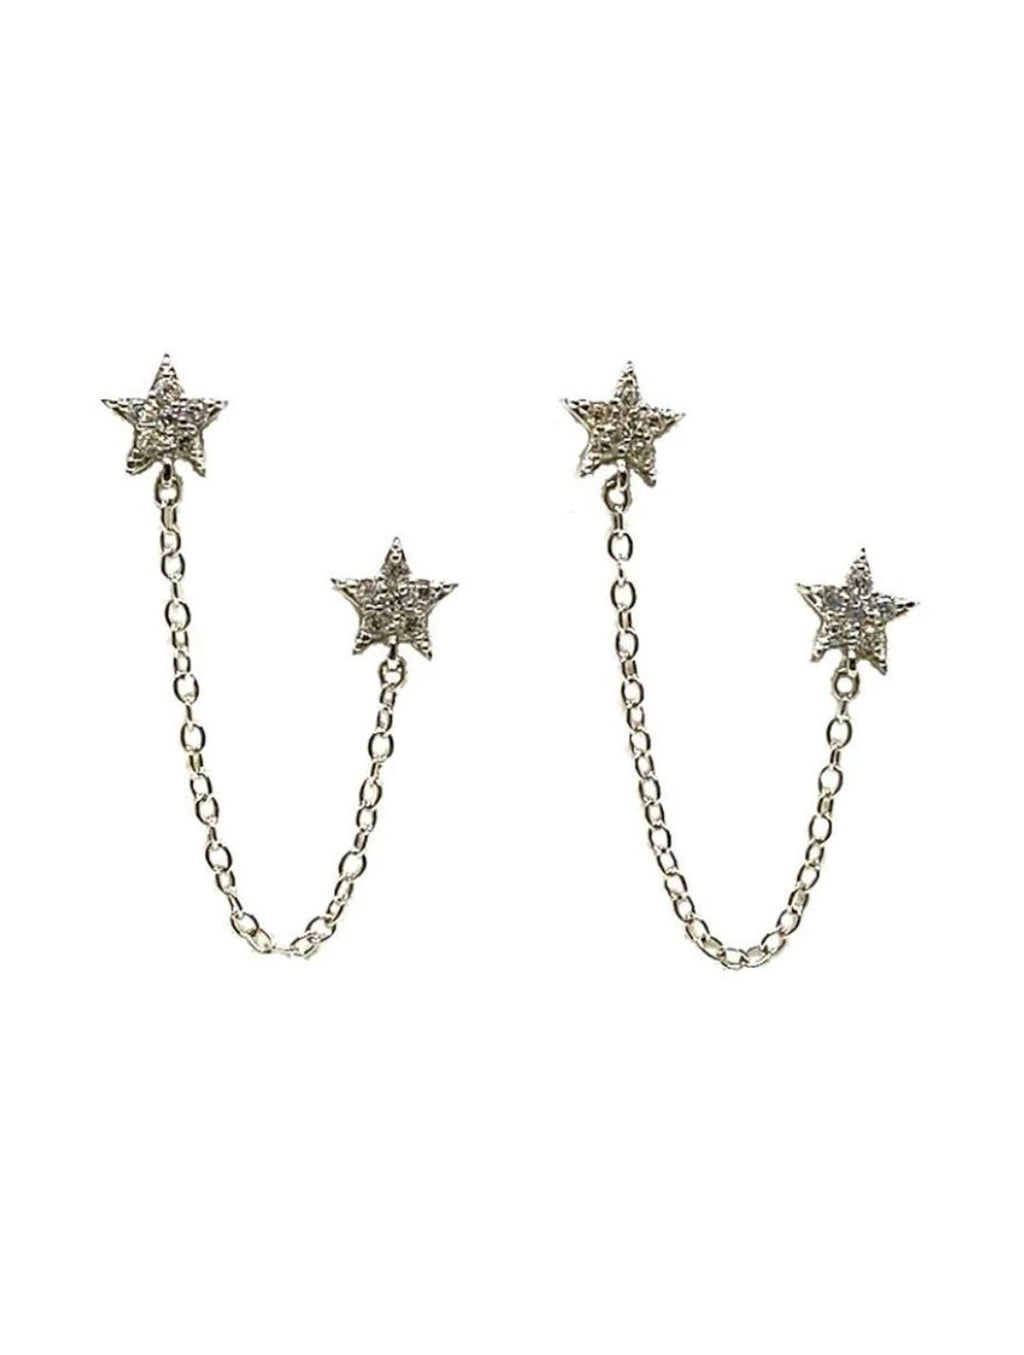 Athena Designs Double Star Earring With Chain in Silver